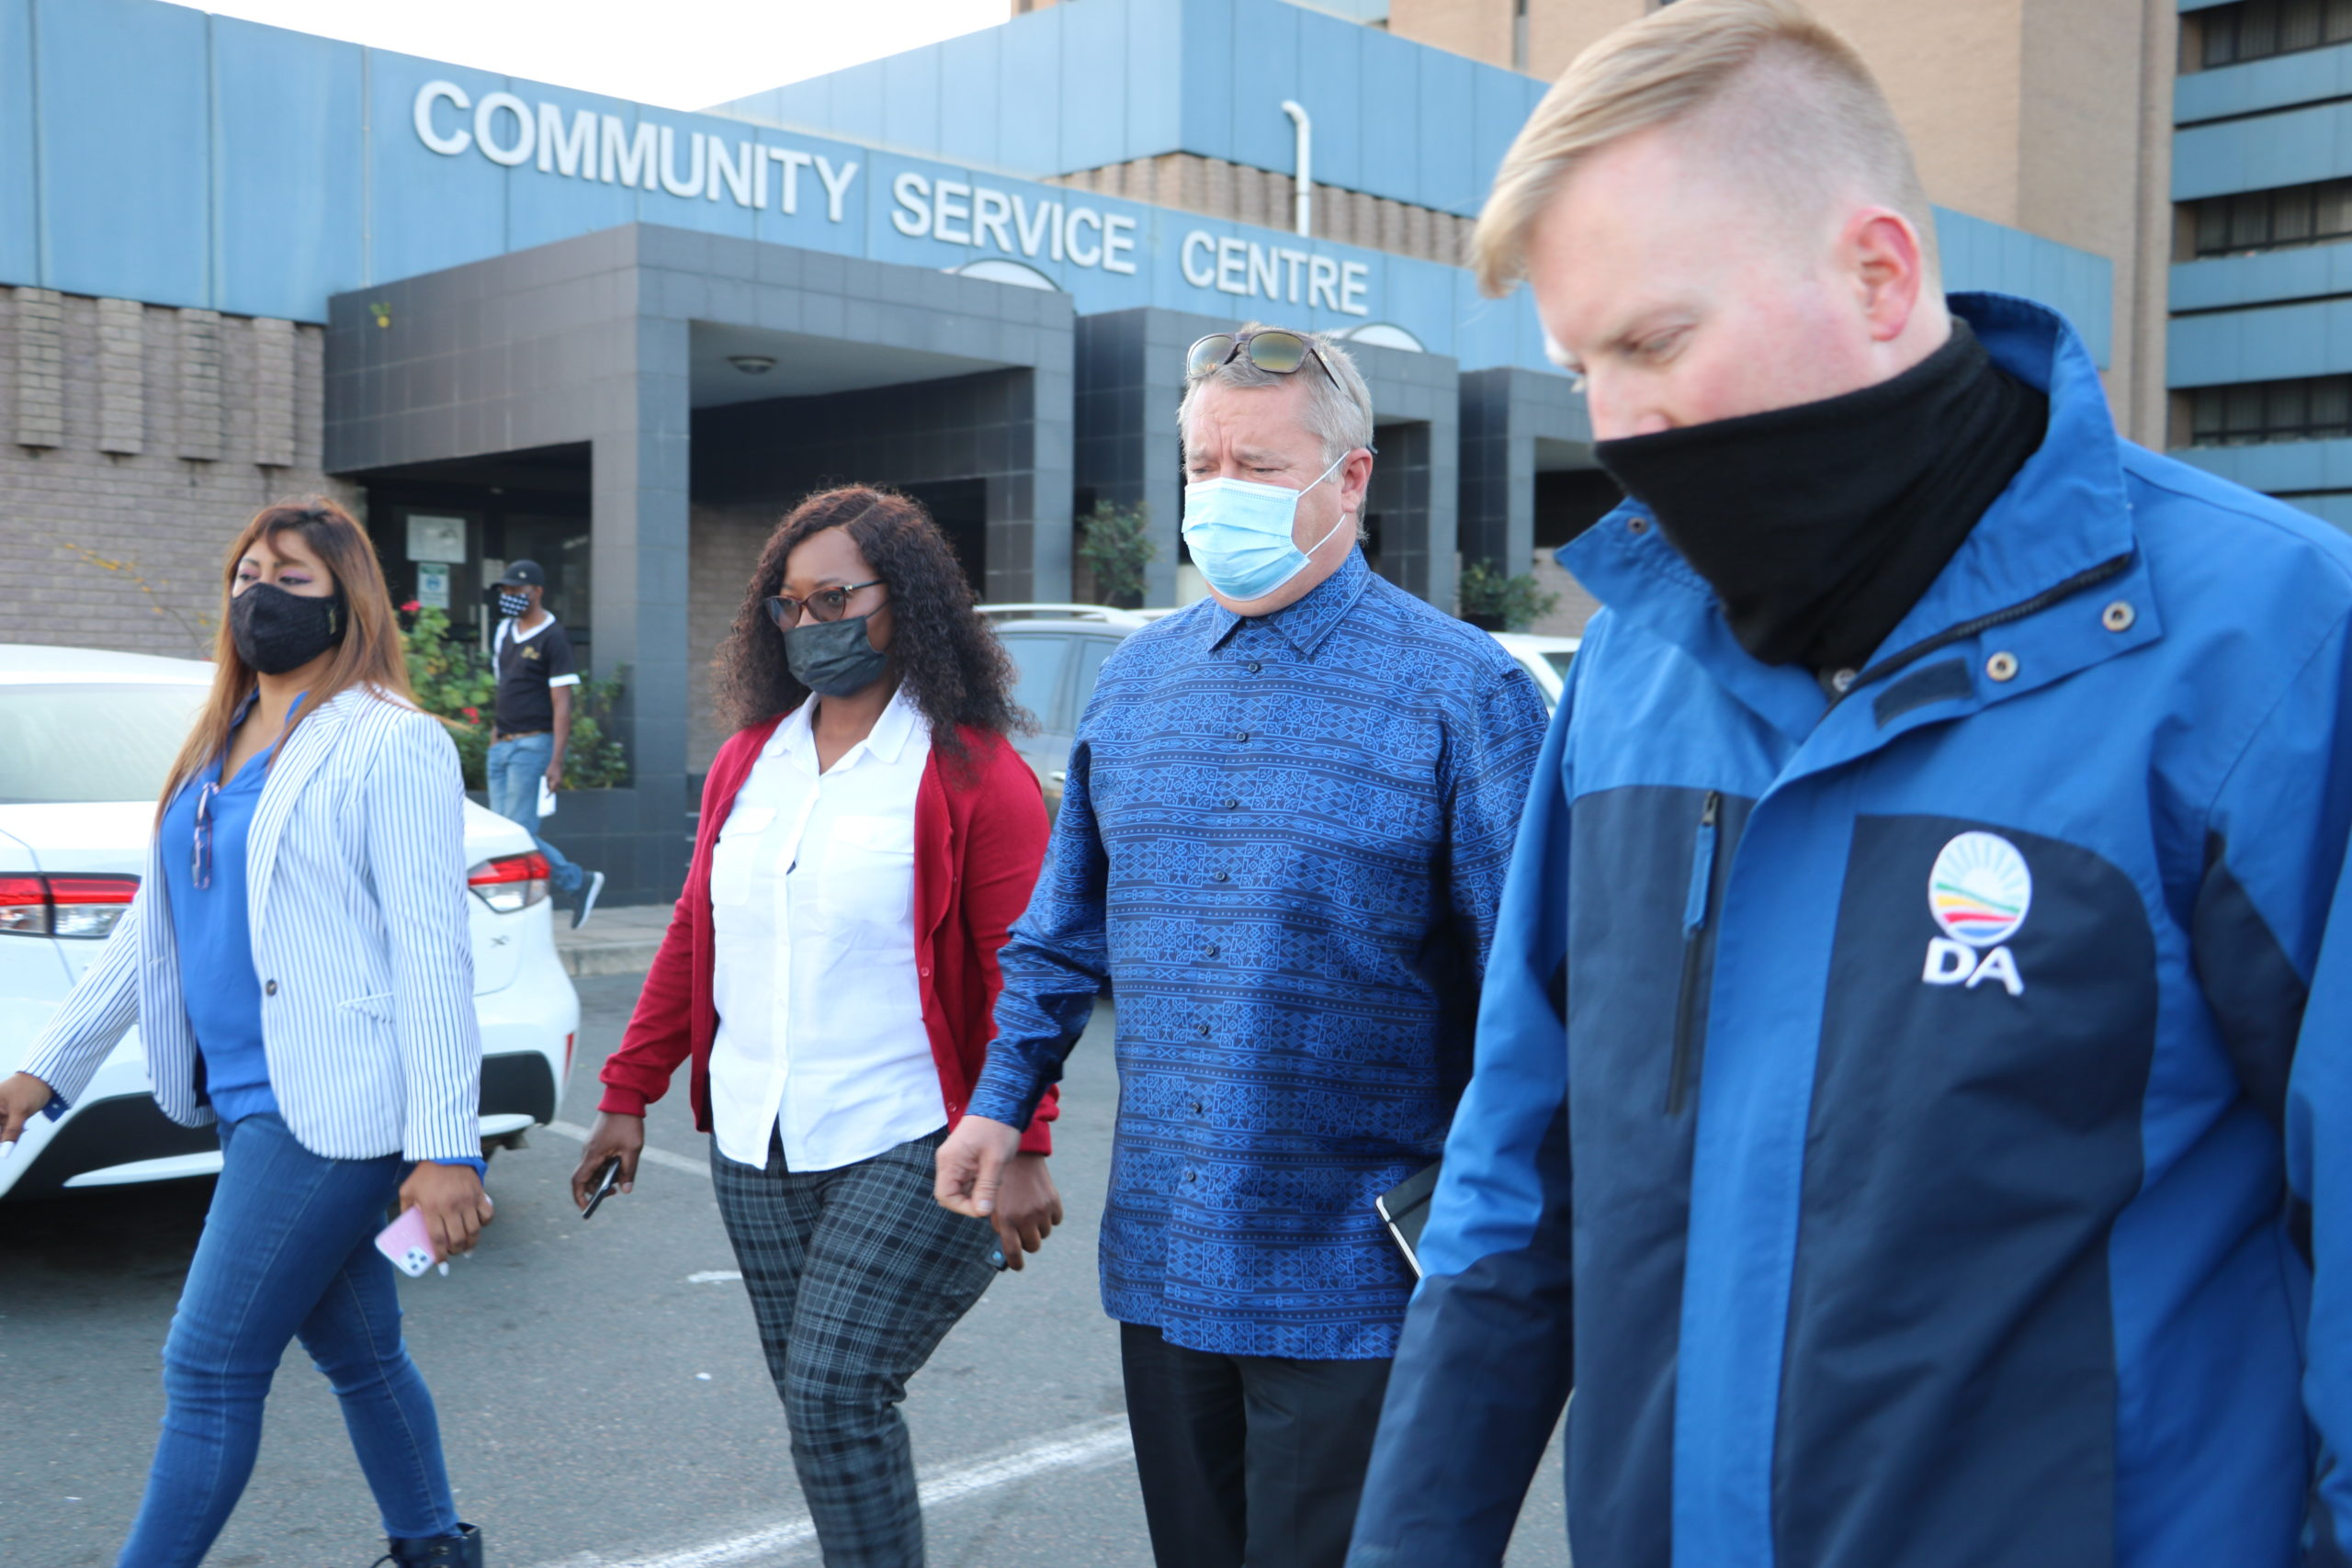 DA meets with SAPS over incitement charges against Jackie Shandu, provides further evidence